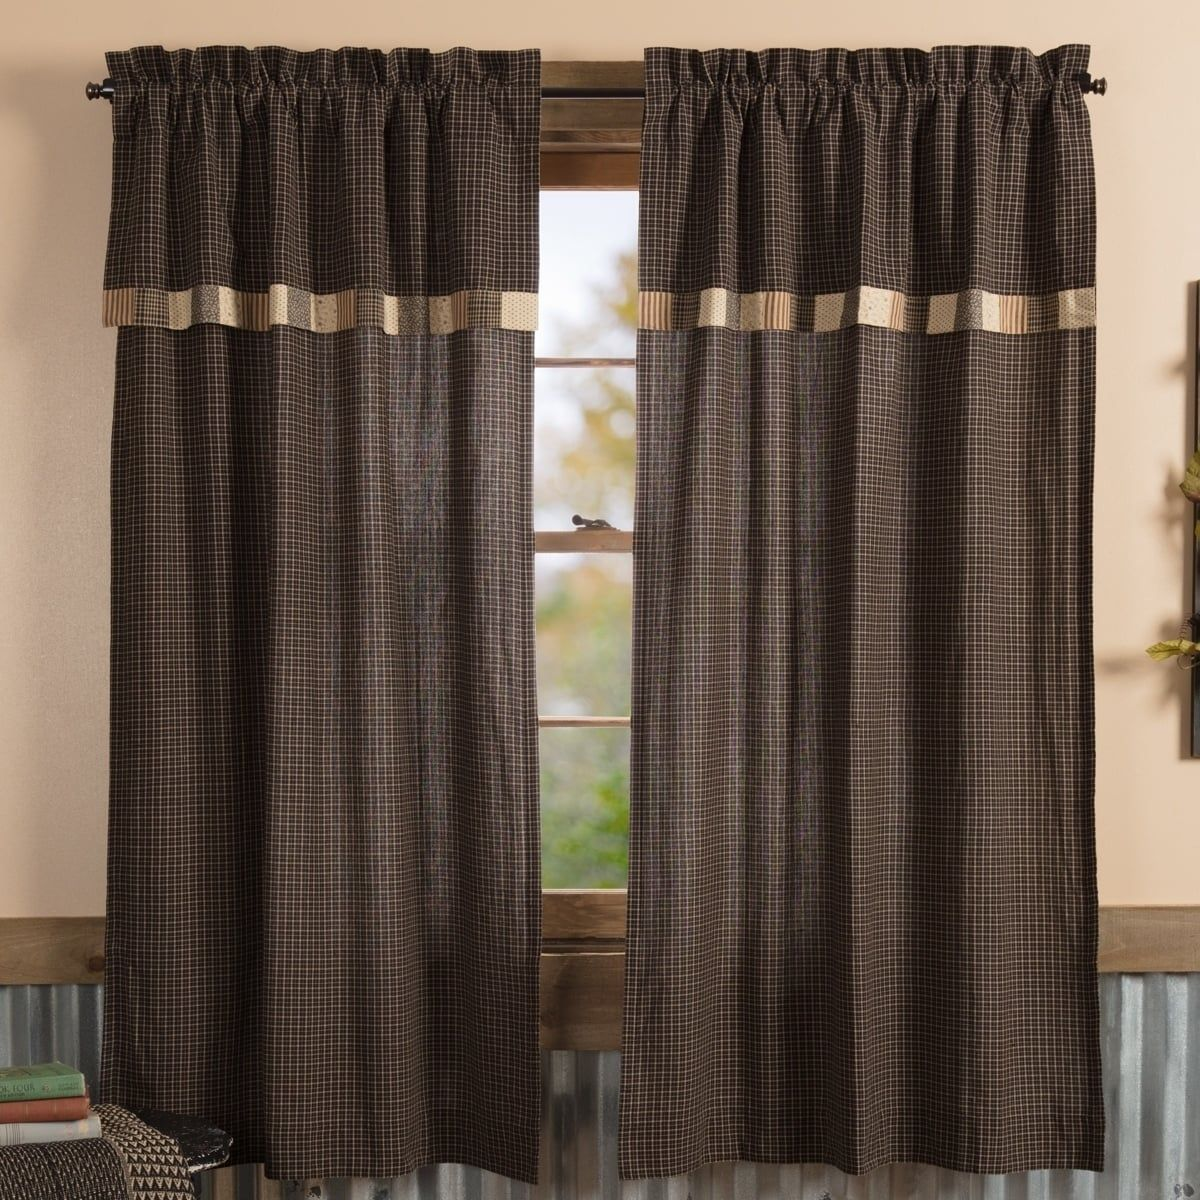 Vhc Country Black Primitive Curtains Kettle Grove Block Border Plaid Short Panel With Valance Pair Vhc Brands 6 Vhc Brands Primitive Curtains